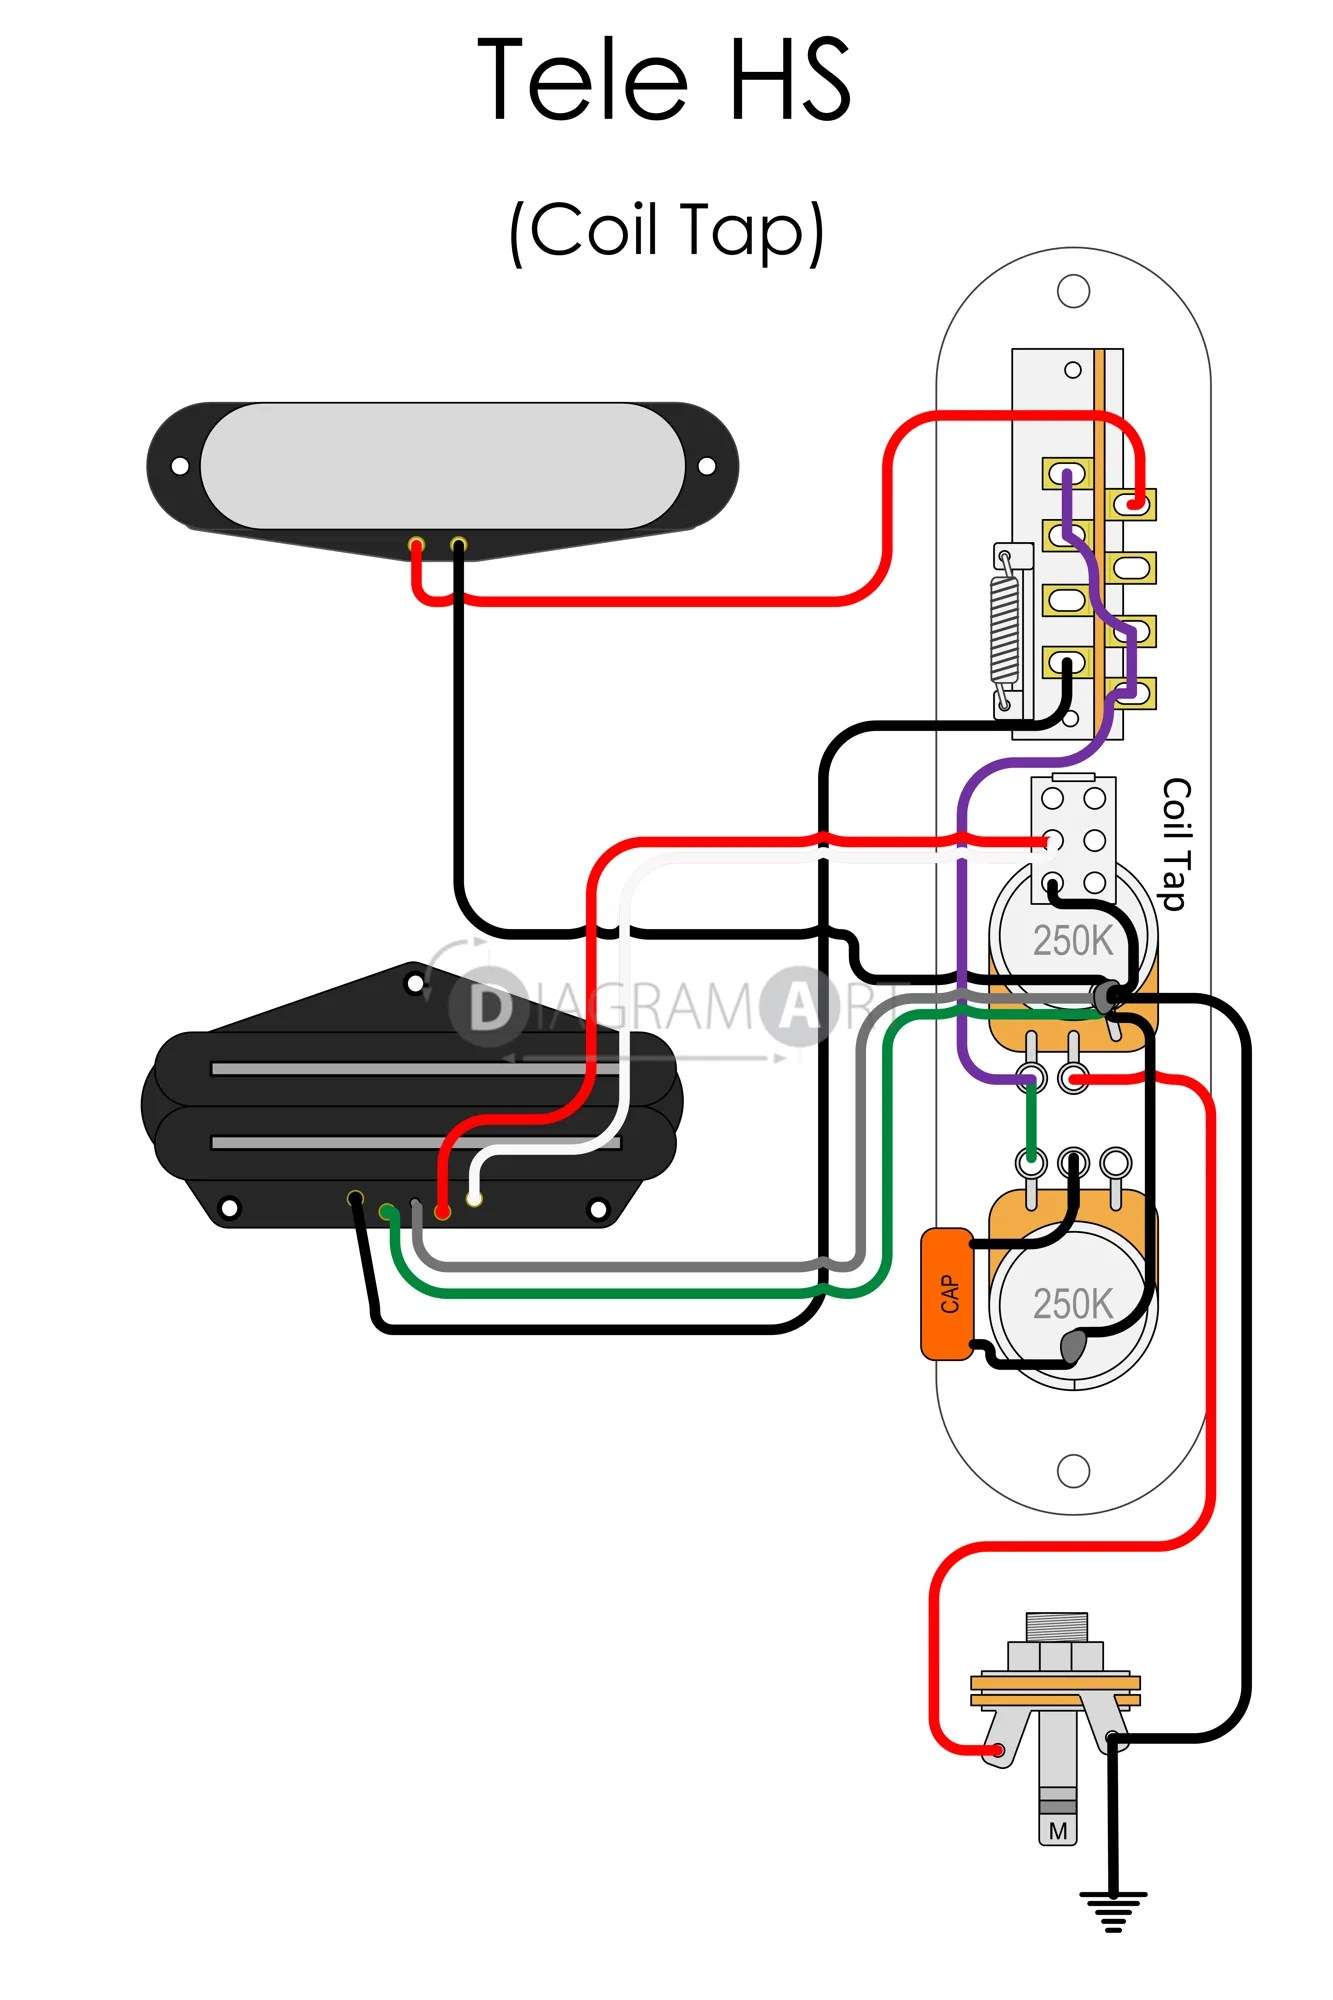 medium resolution of electric guitar wiring tele hs coil tap electric circuit coil tap wiring diagram seymour duncan coil tap wiring